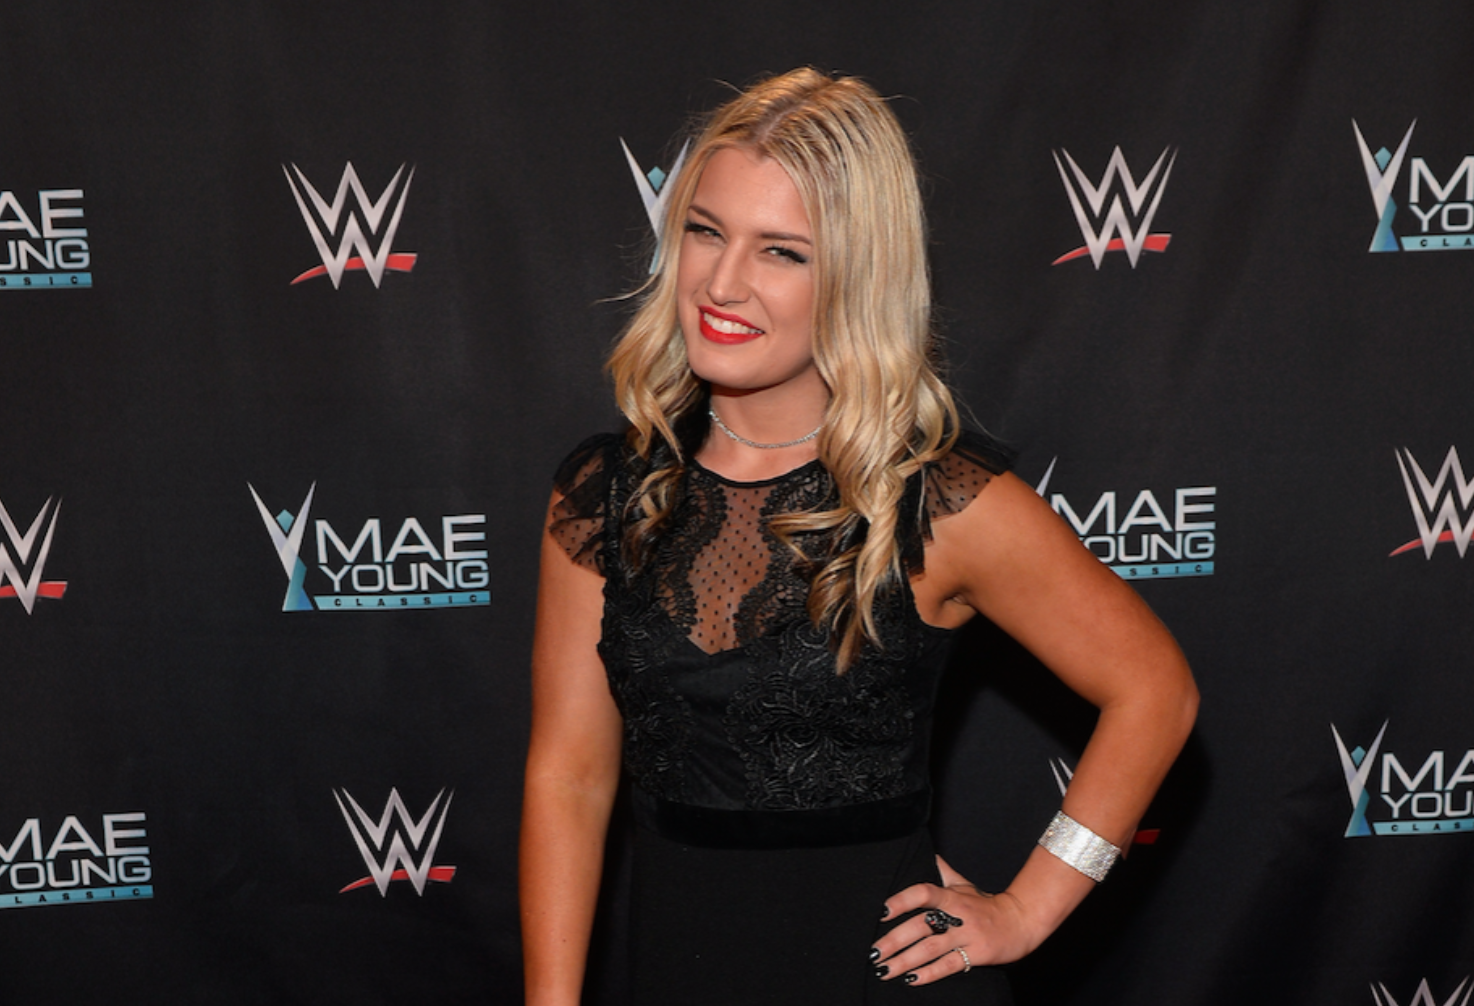 After Nude Photo Leak, WWE's Toni Storm Backed by Paige and ...